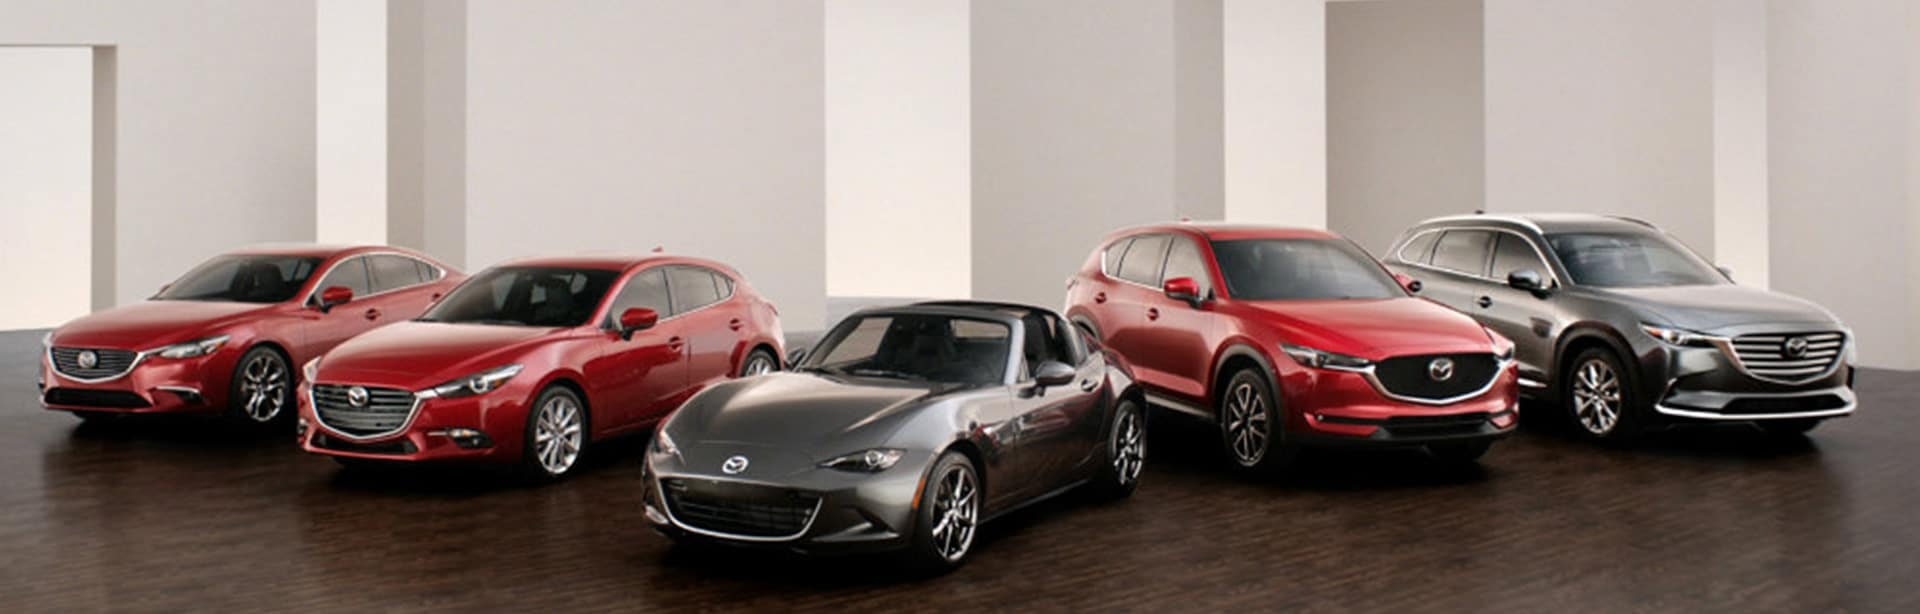 Explore the All-New Mazda3 Sedan